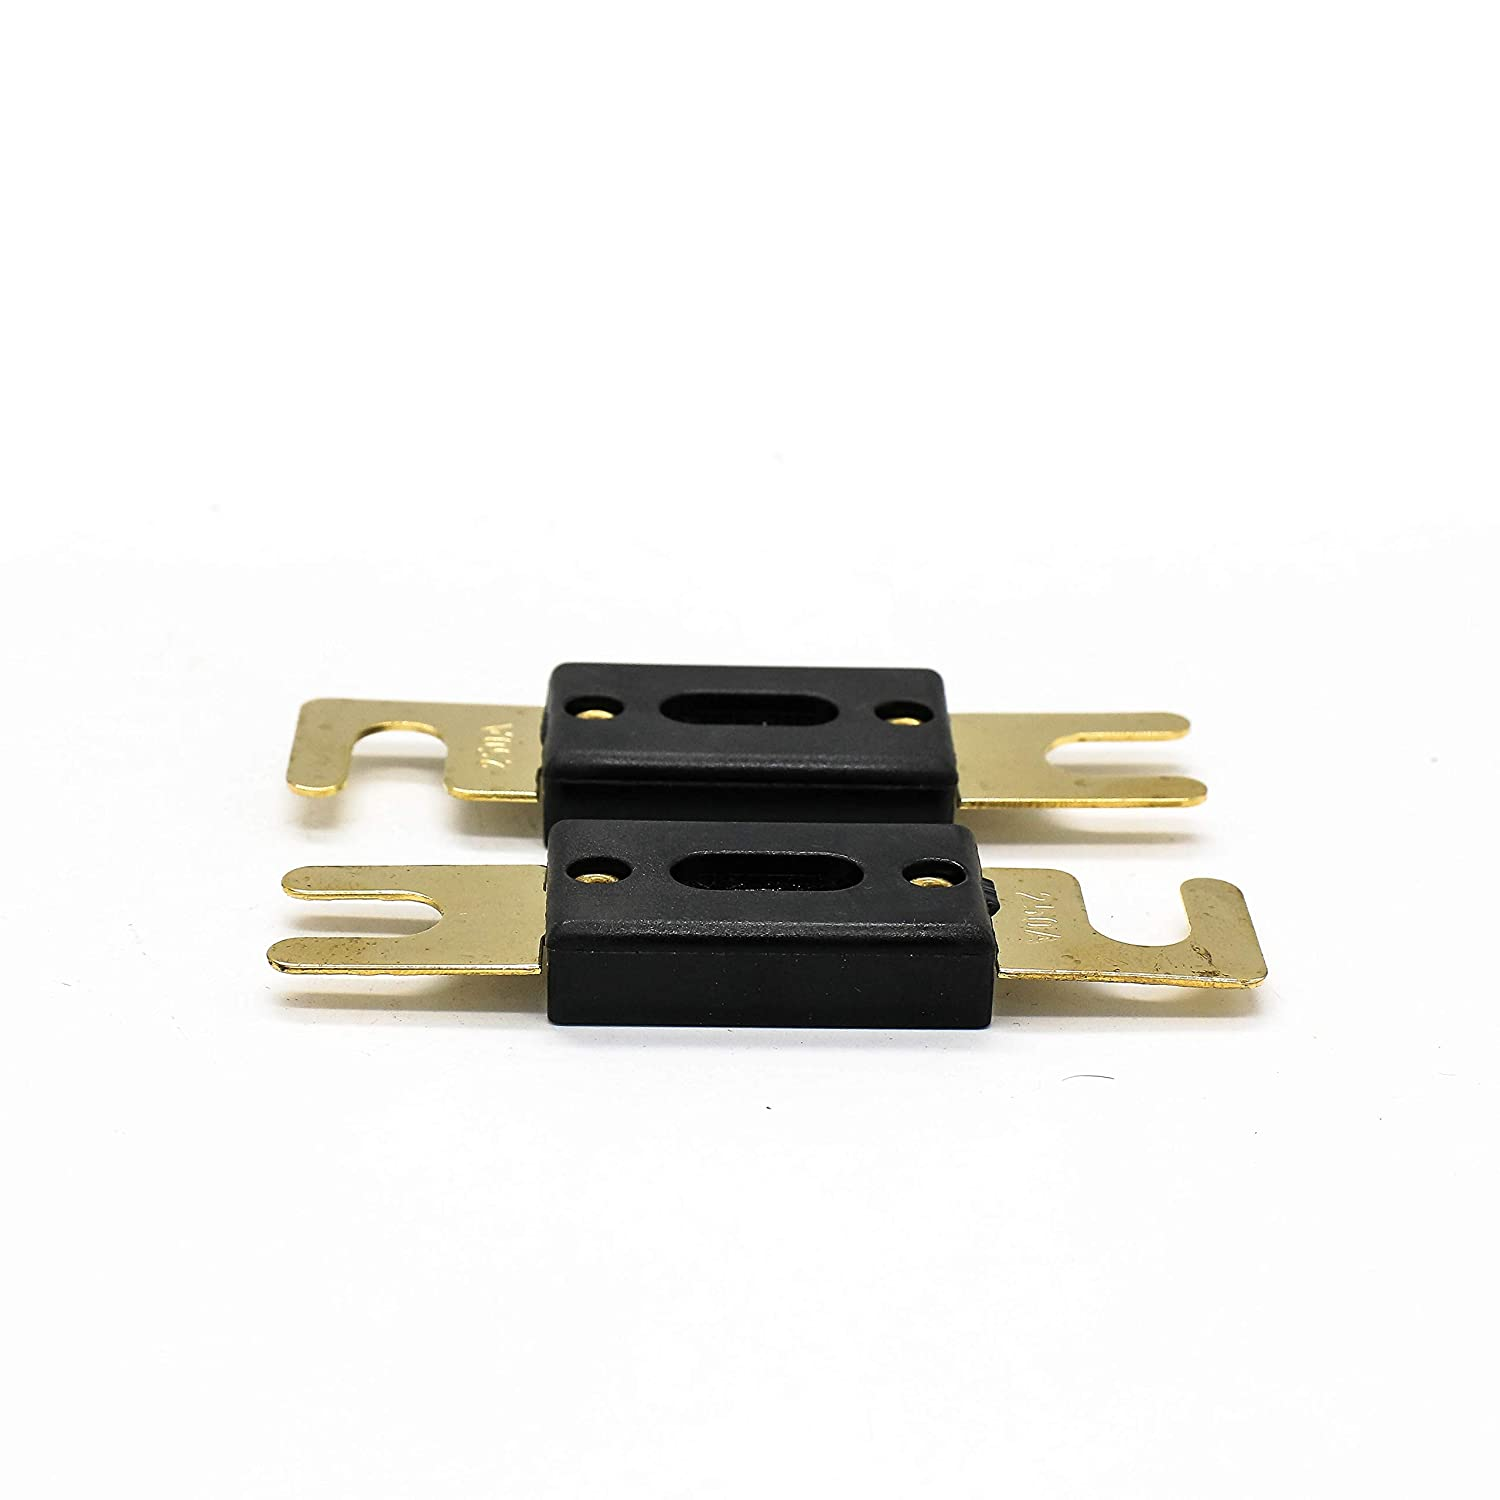 2PCS ANL-250 250Amp Car Amplifier Fuse Gold Plated for Car Vehicles Audio System 2pc ANL 150amp Fuse